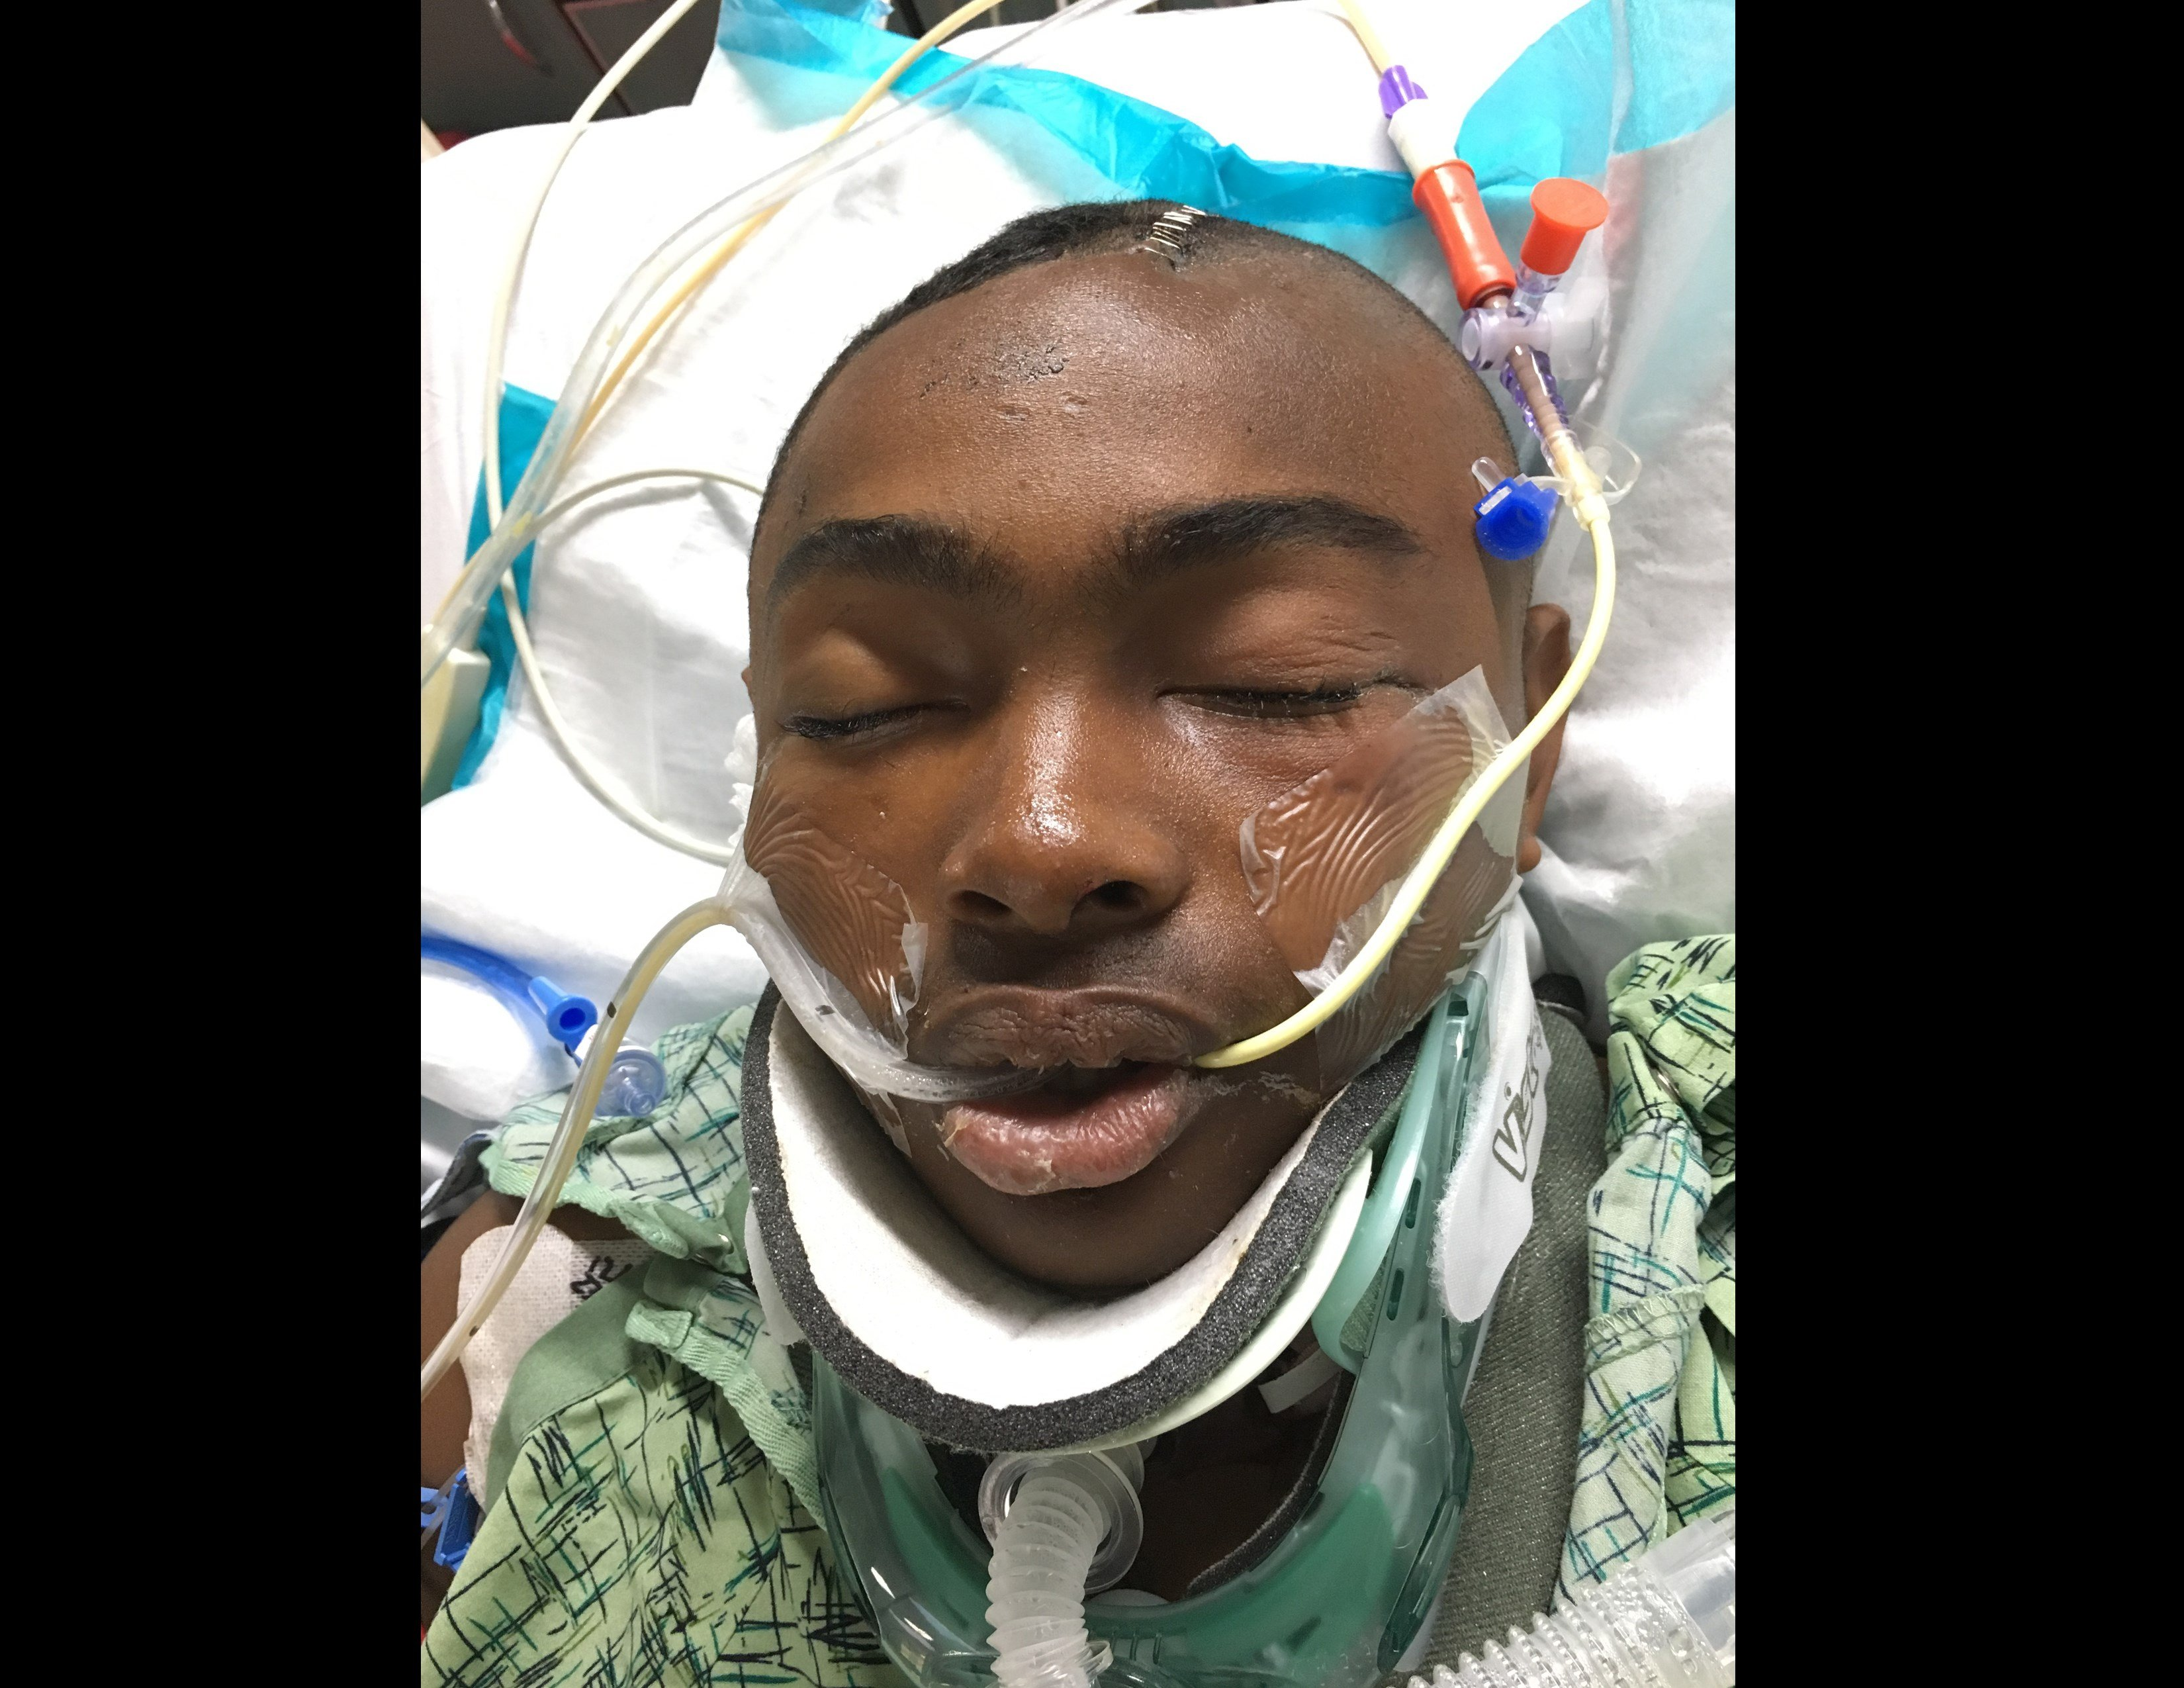 injured bicyclist reunited family at scripps mercy hospital 16 year old dayonte broughton